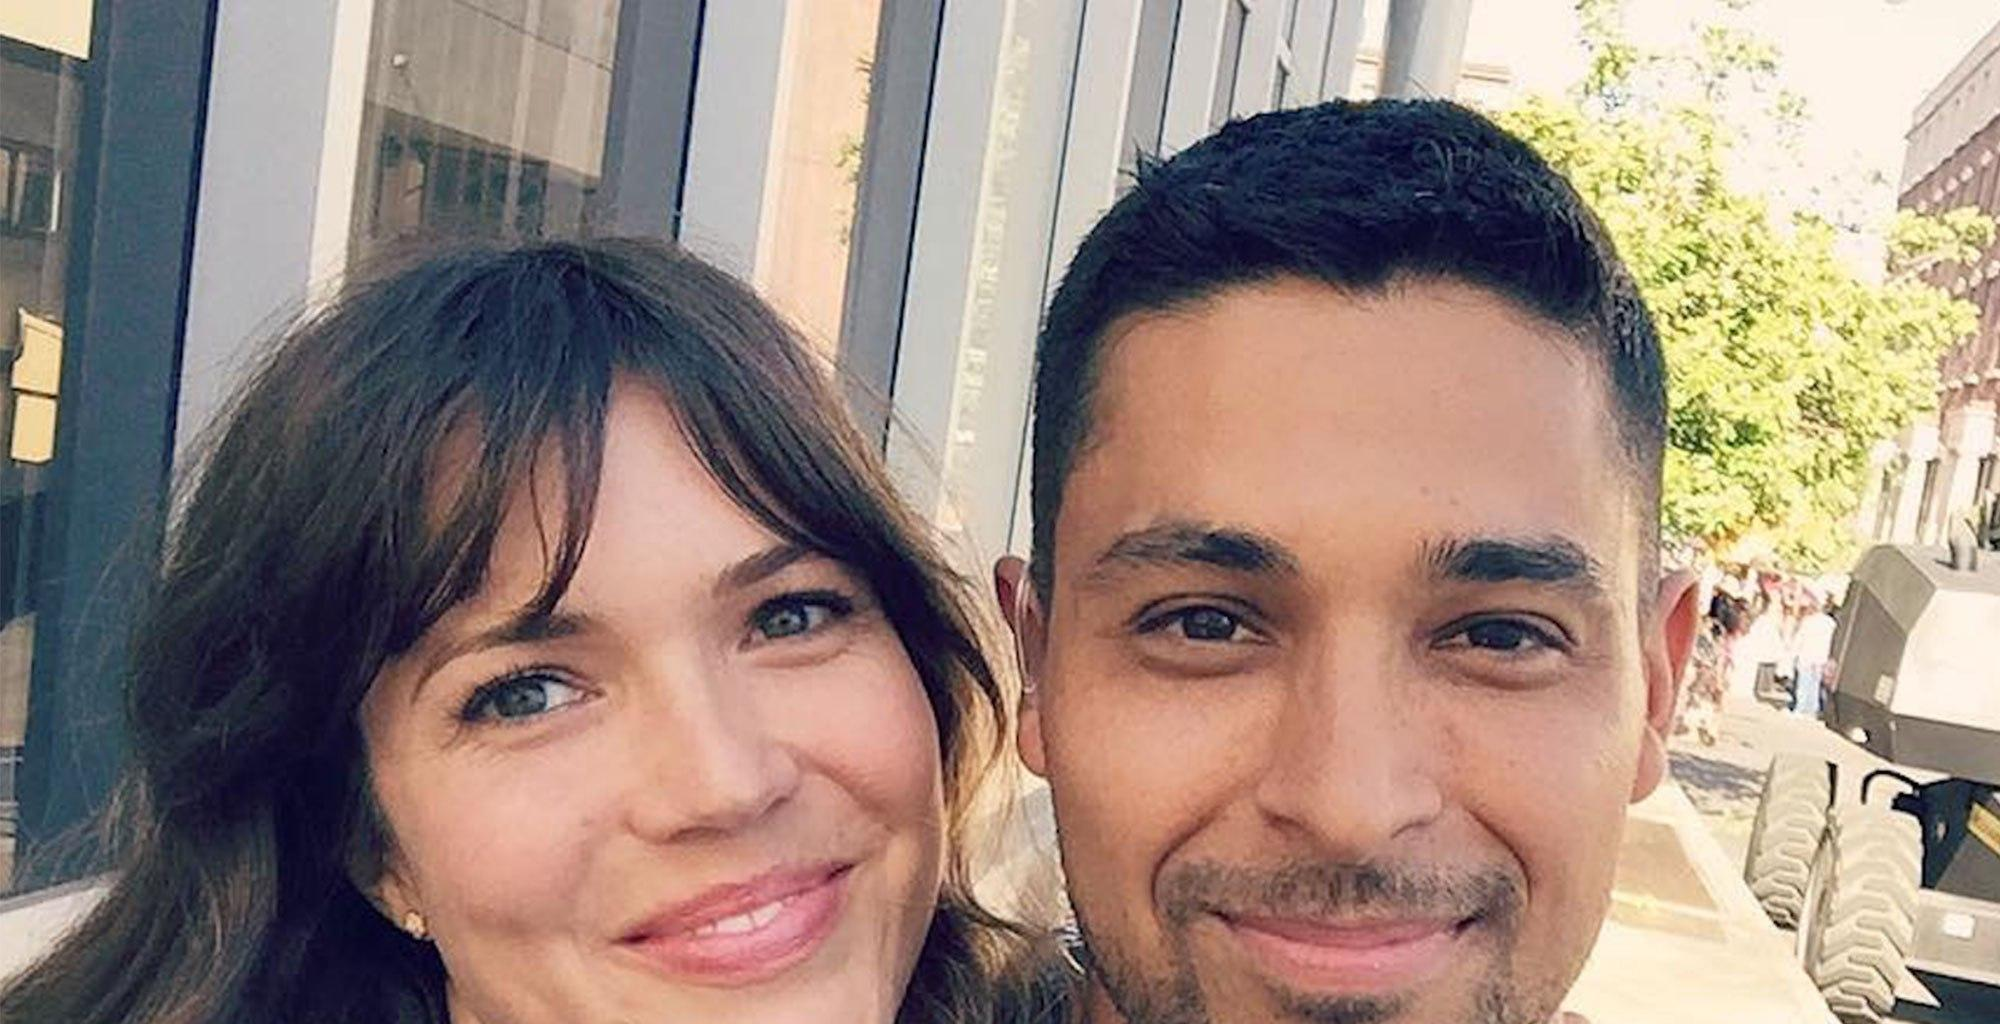 Mandy Moore And Wilmer Valderrama - The Friendly Exes Ran Into Each Other And Were Actually Excited To Meet!